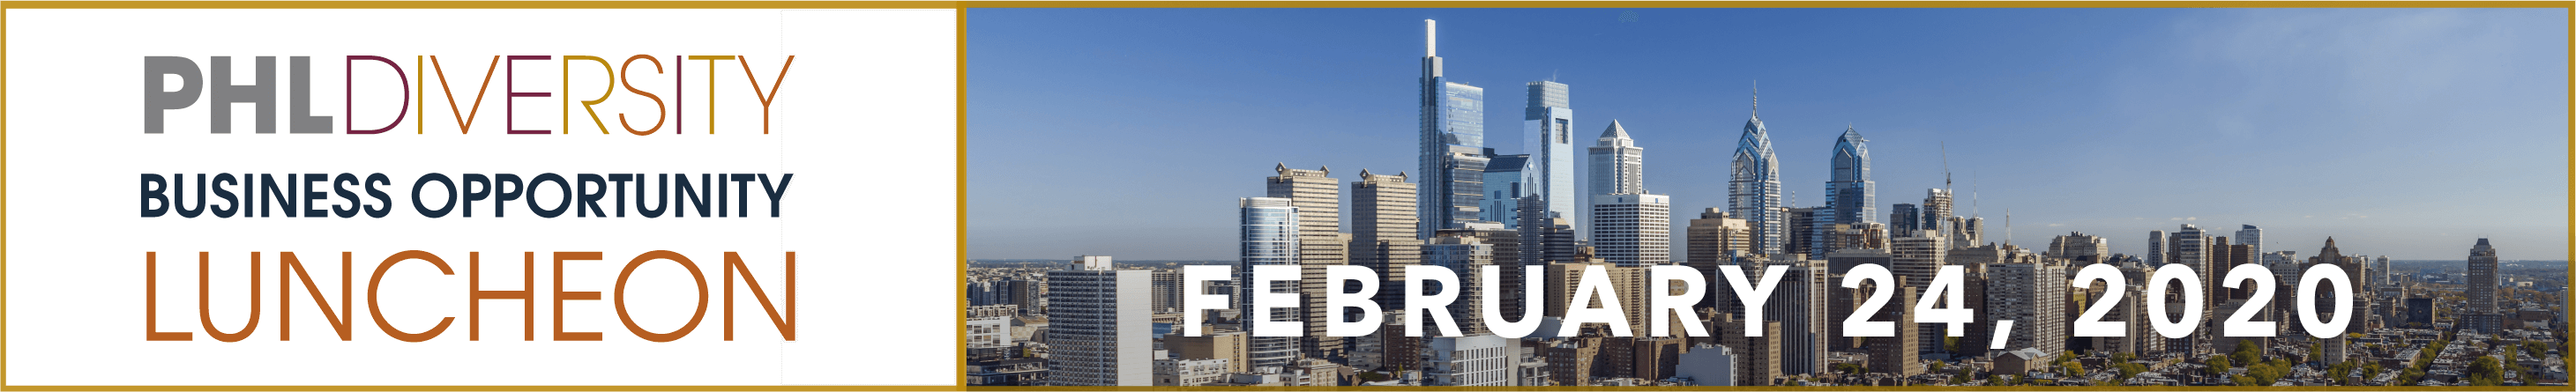 PHLDiversity Business Opportunity Luncheon 2020